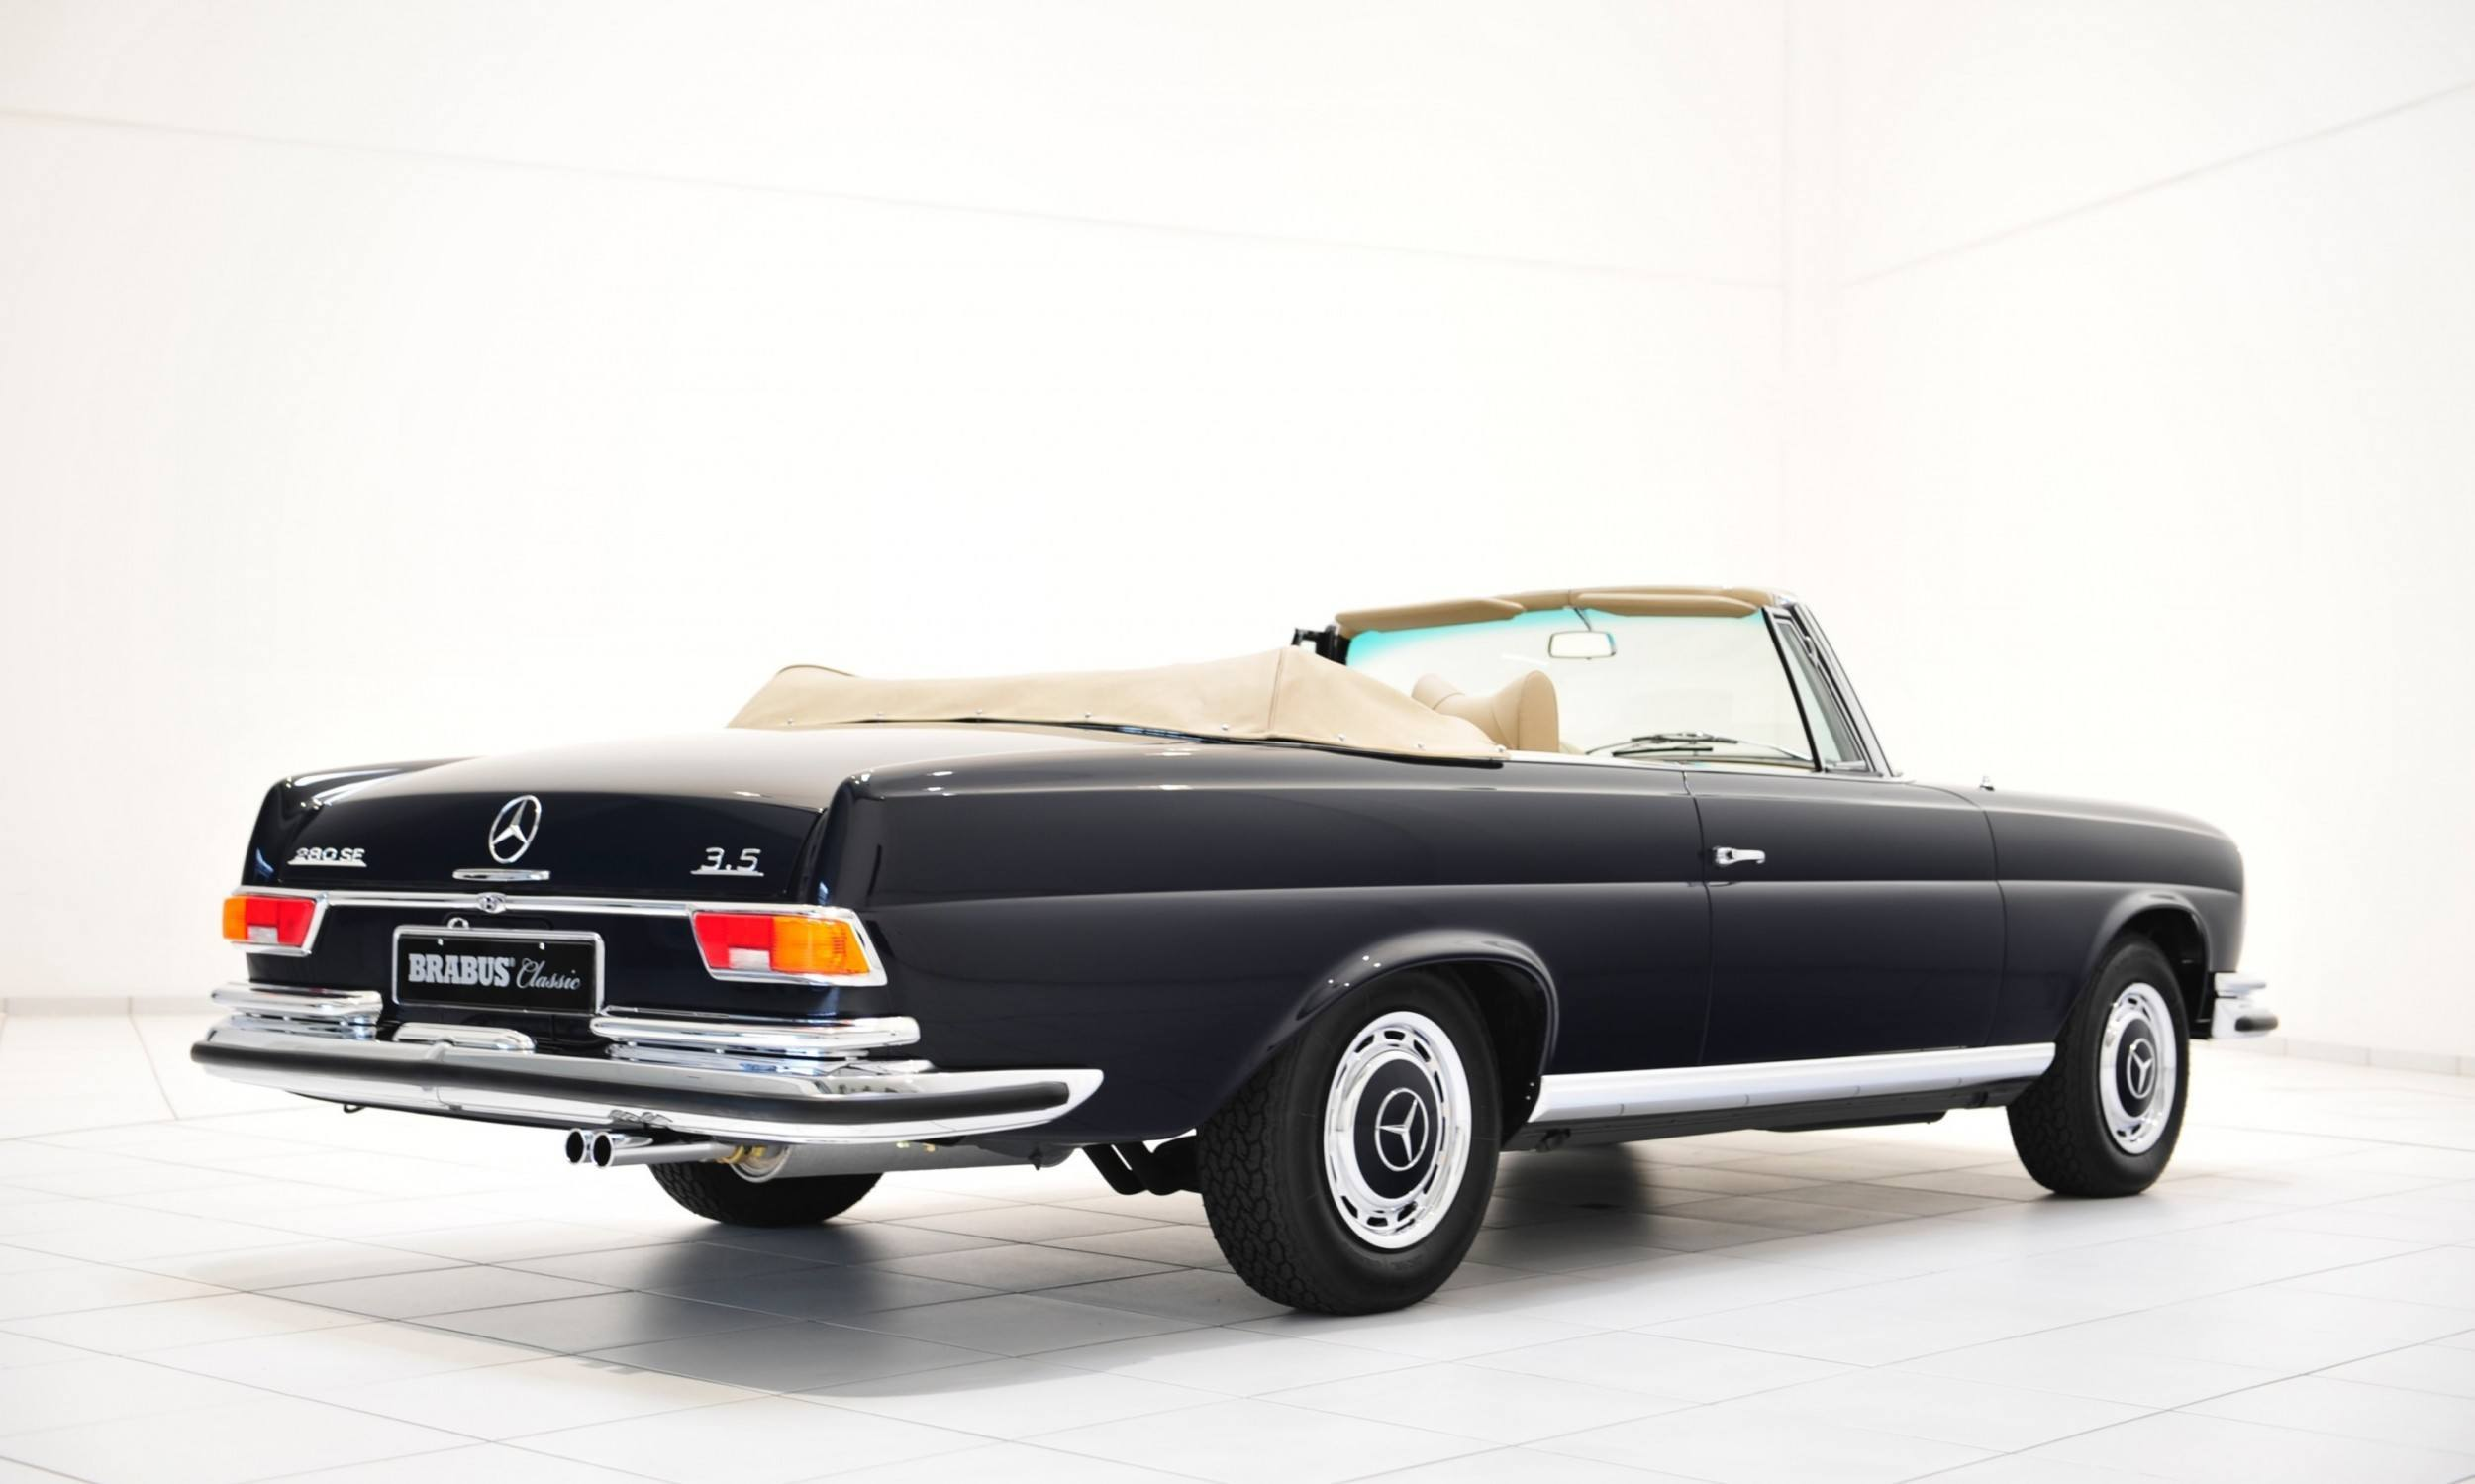 BRABUS Classic Mercedes-Benz Restoration Examples - As-New